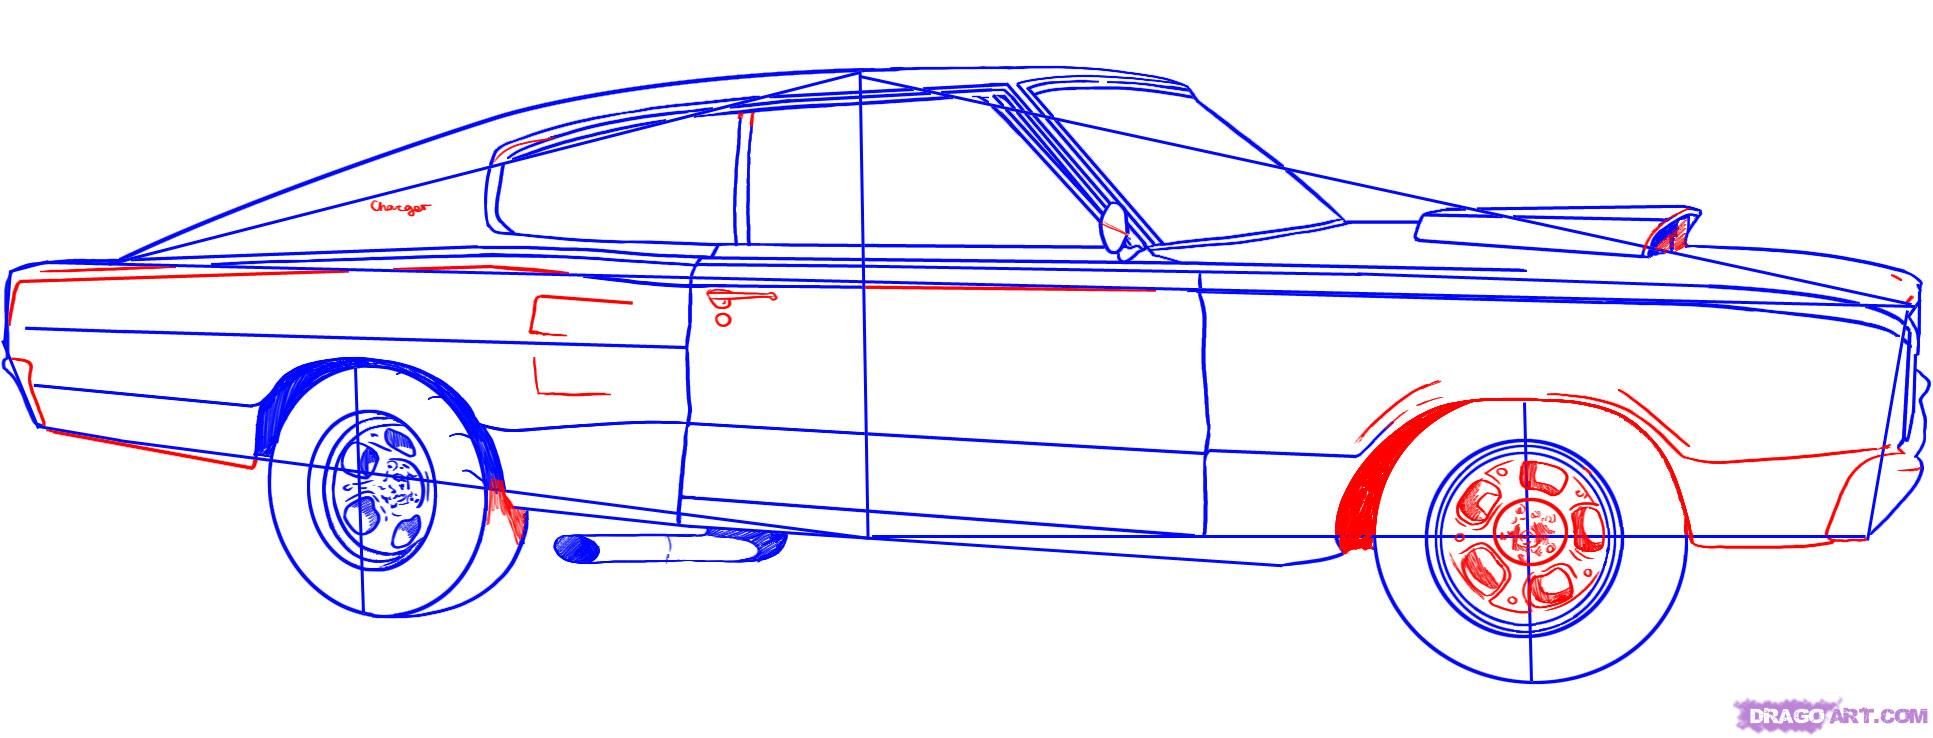 Car Drawing For Beginners at GetDrawings.com | Free for personal use ...